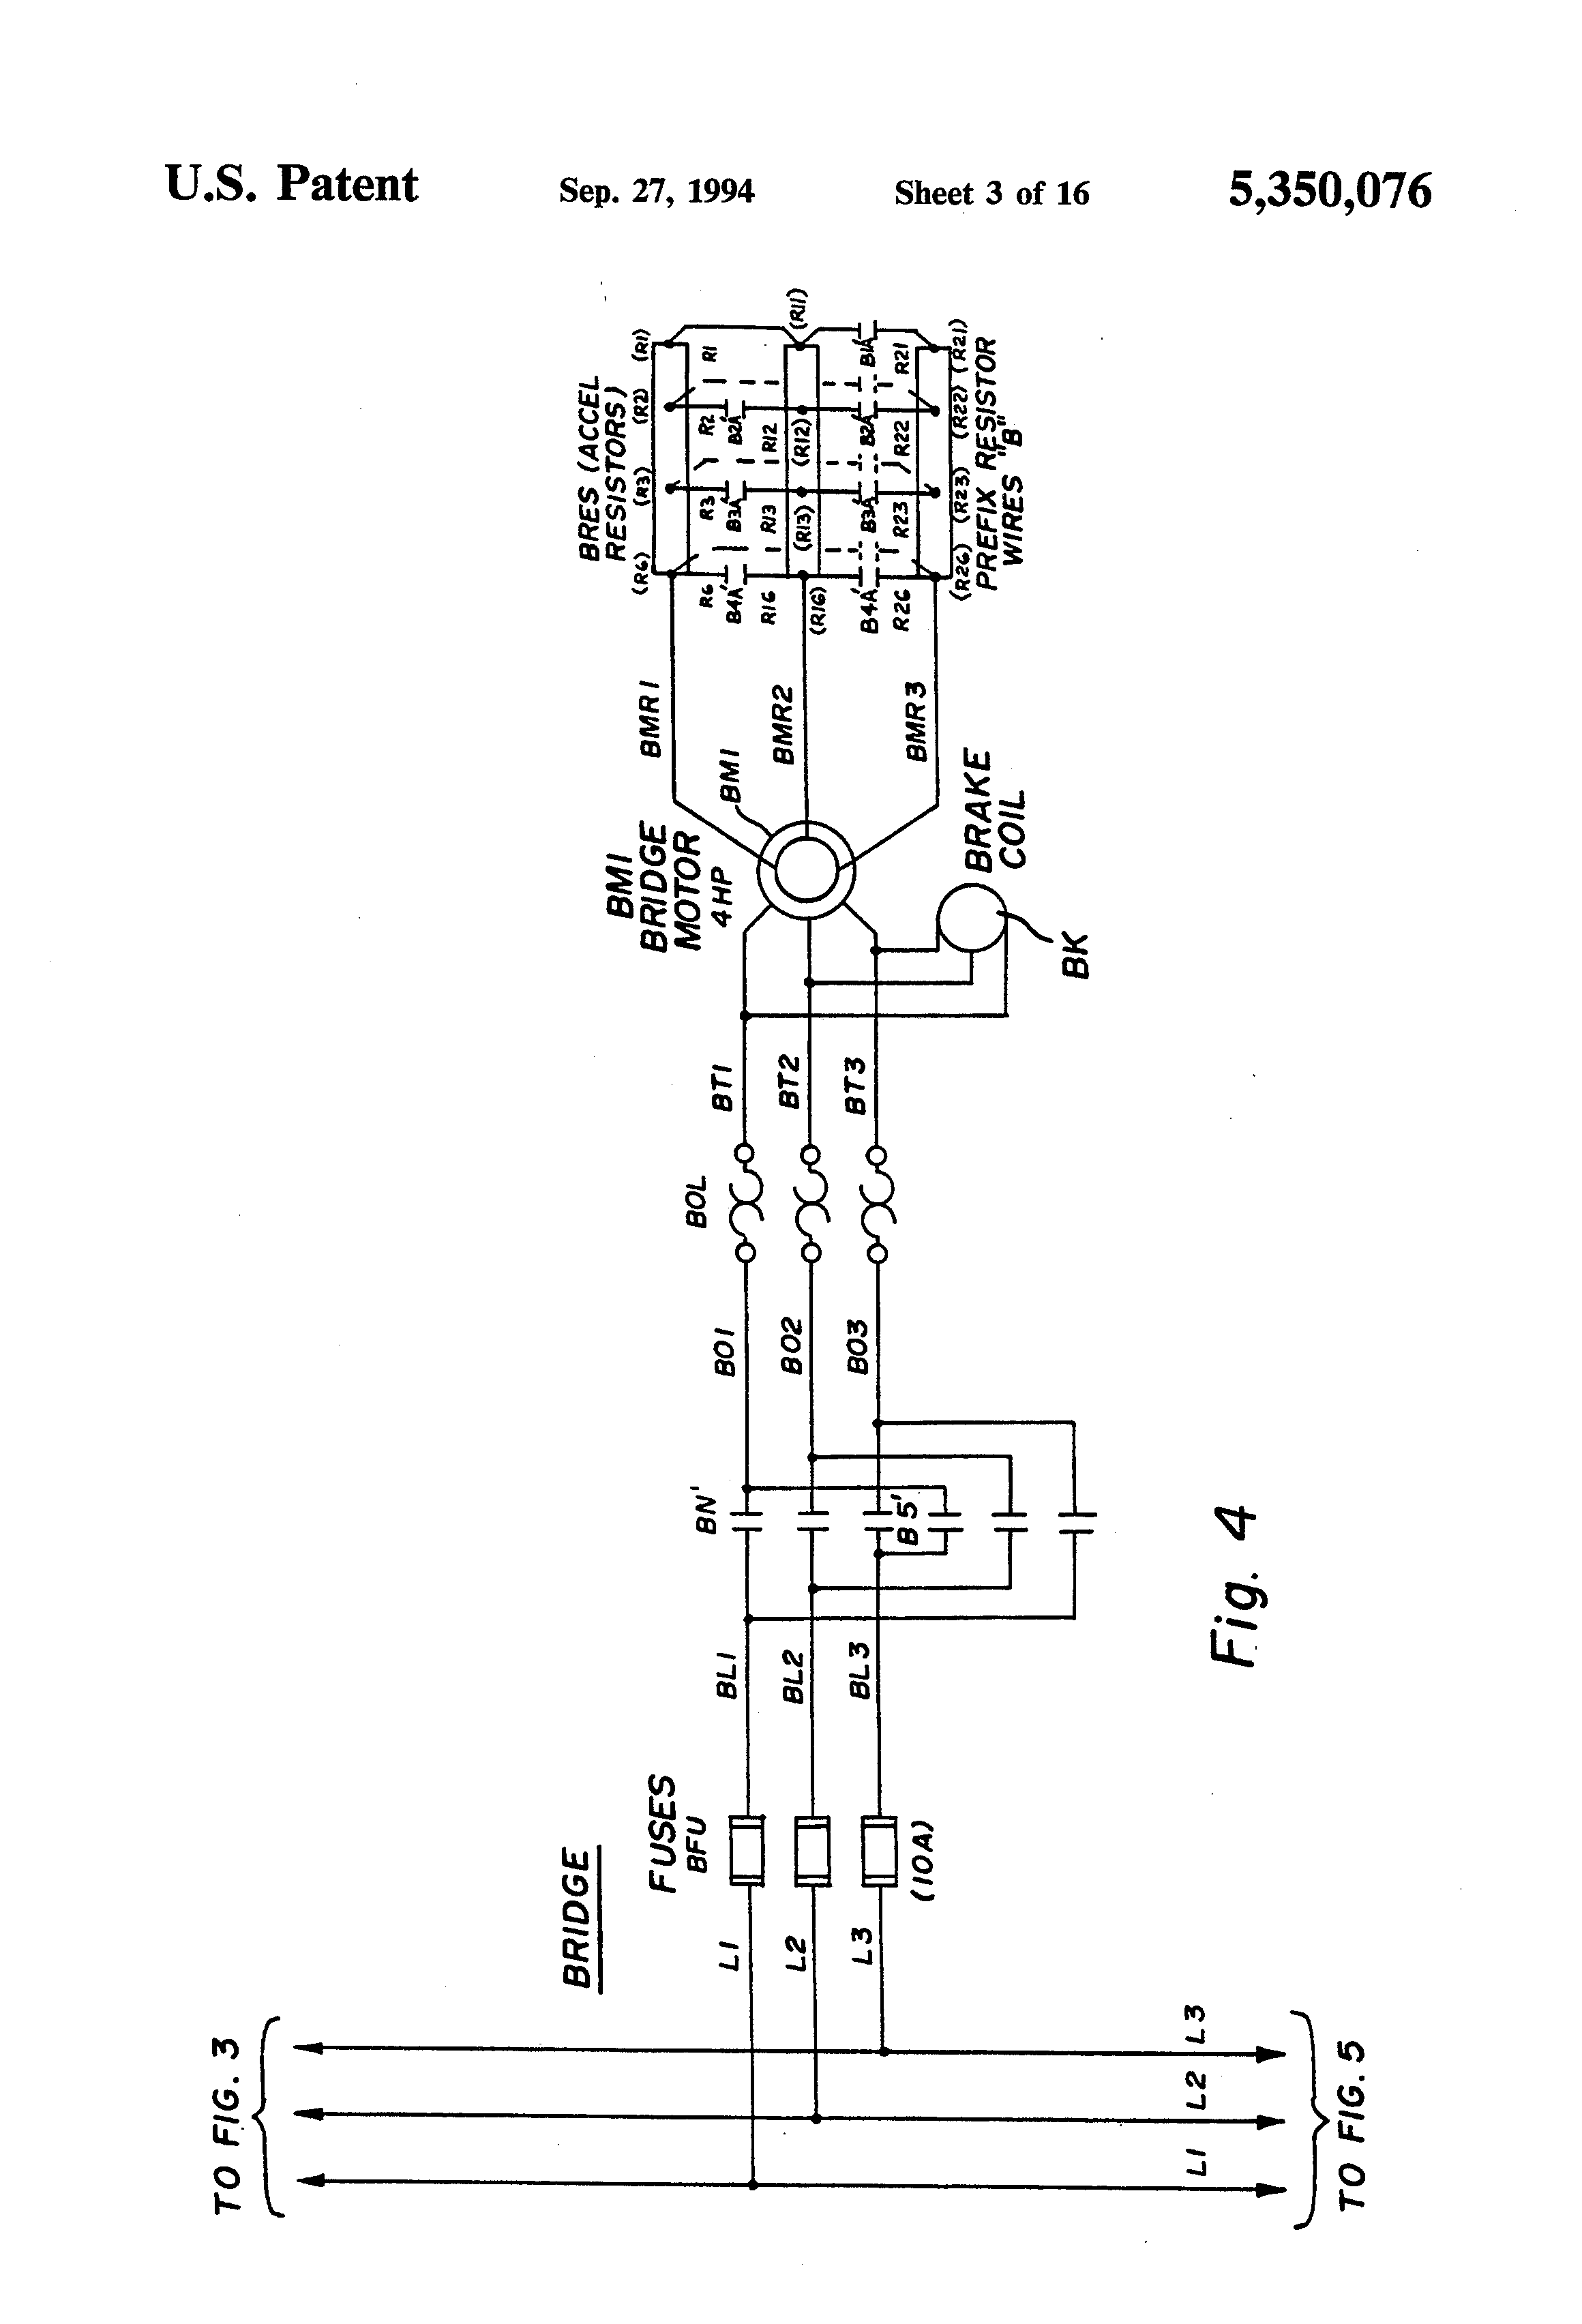 Demag Motor Wiring Diagram 26 Images Abb Starters Control Us5350076 3 Patent Bridge Crane Electric System Diagrams At Highcare